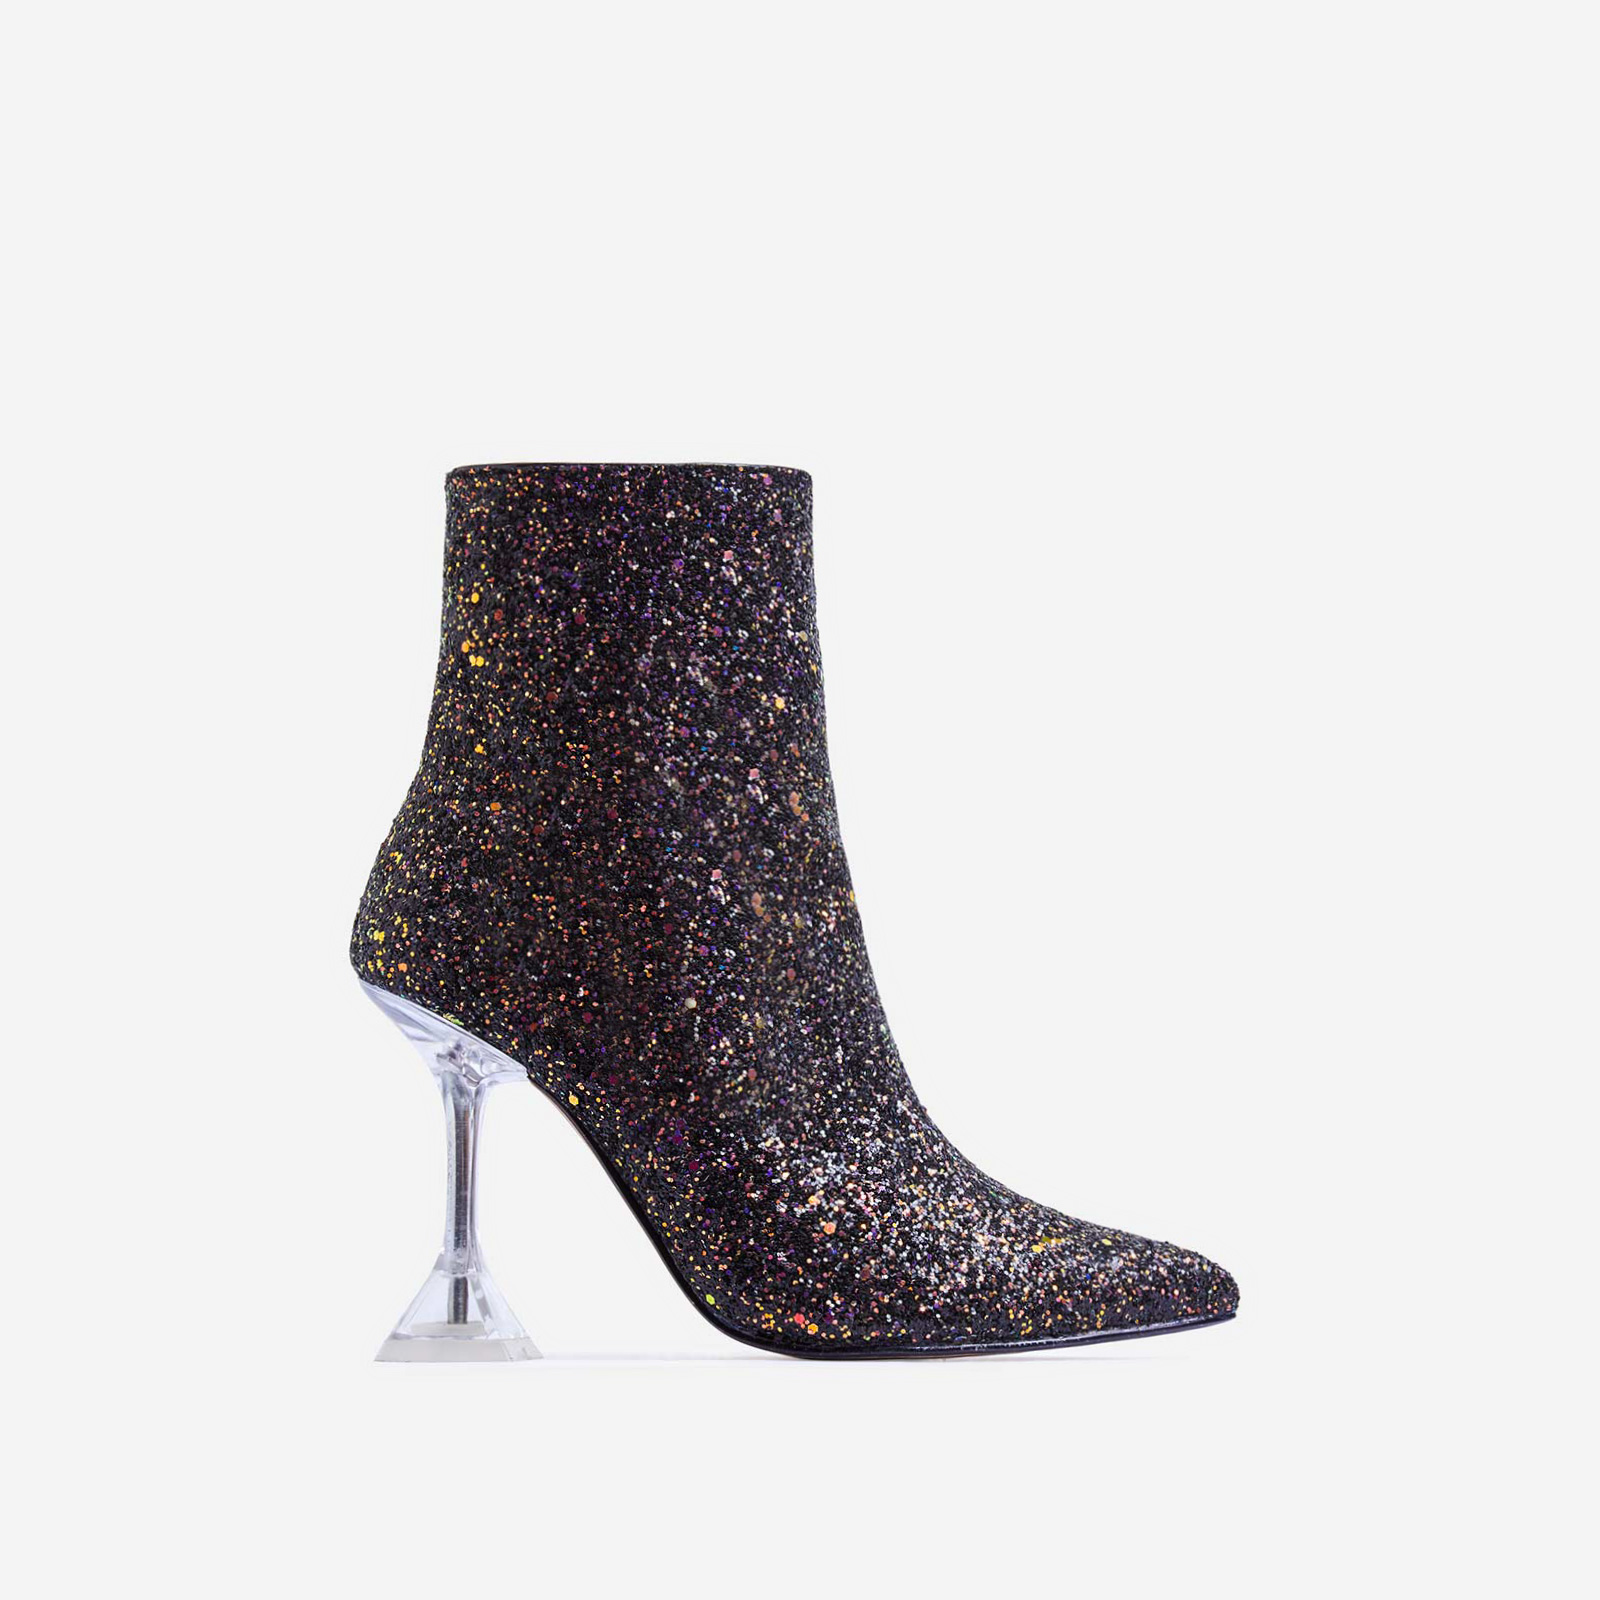 Bacardi Perspex Pyramid Heel Ankle Boot In Black Glitter